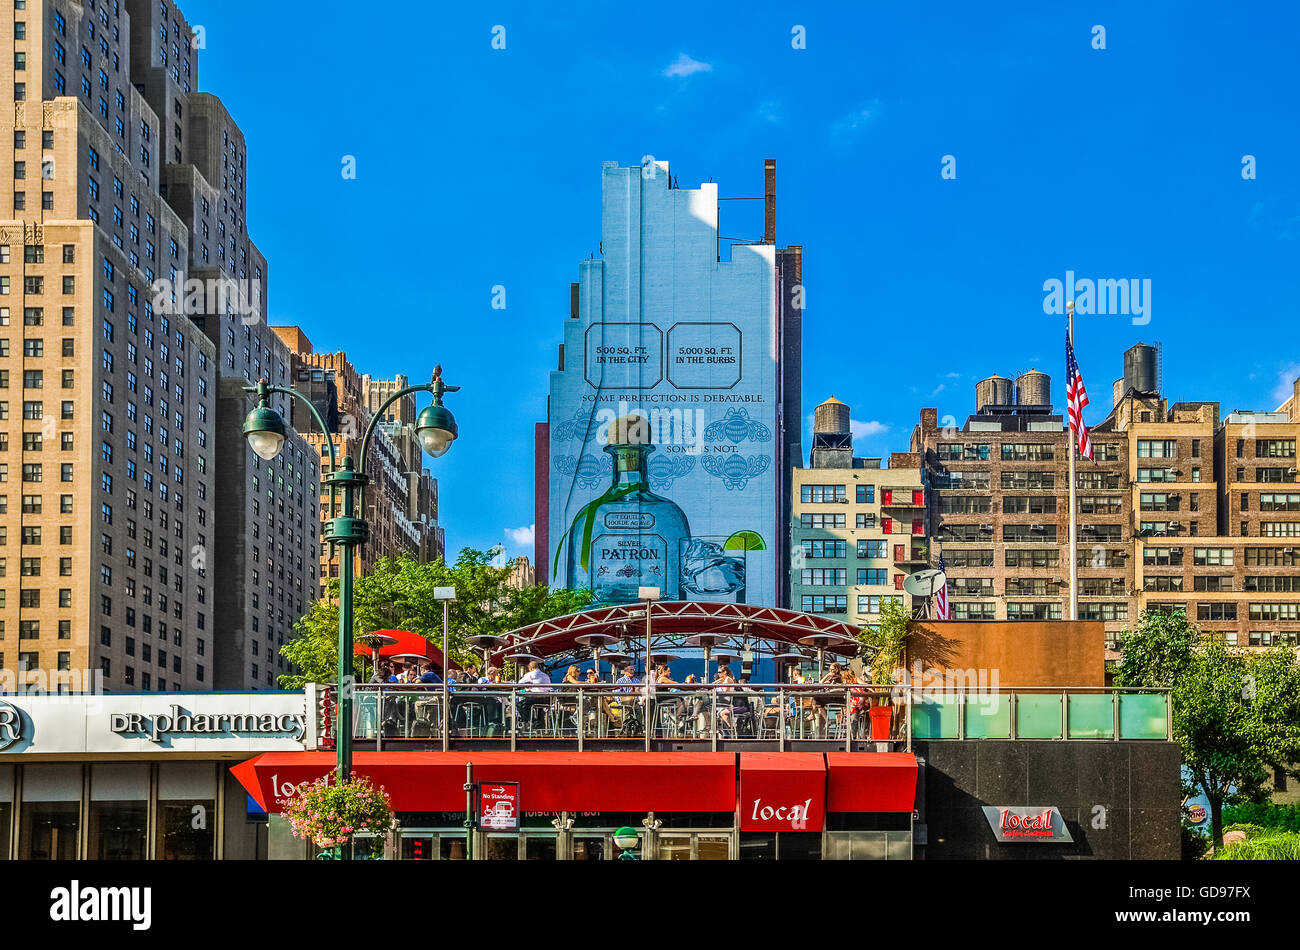 U.S.A., New York,Manhattan,people in Madison Square Garden area - Stock Image